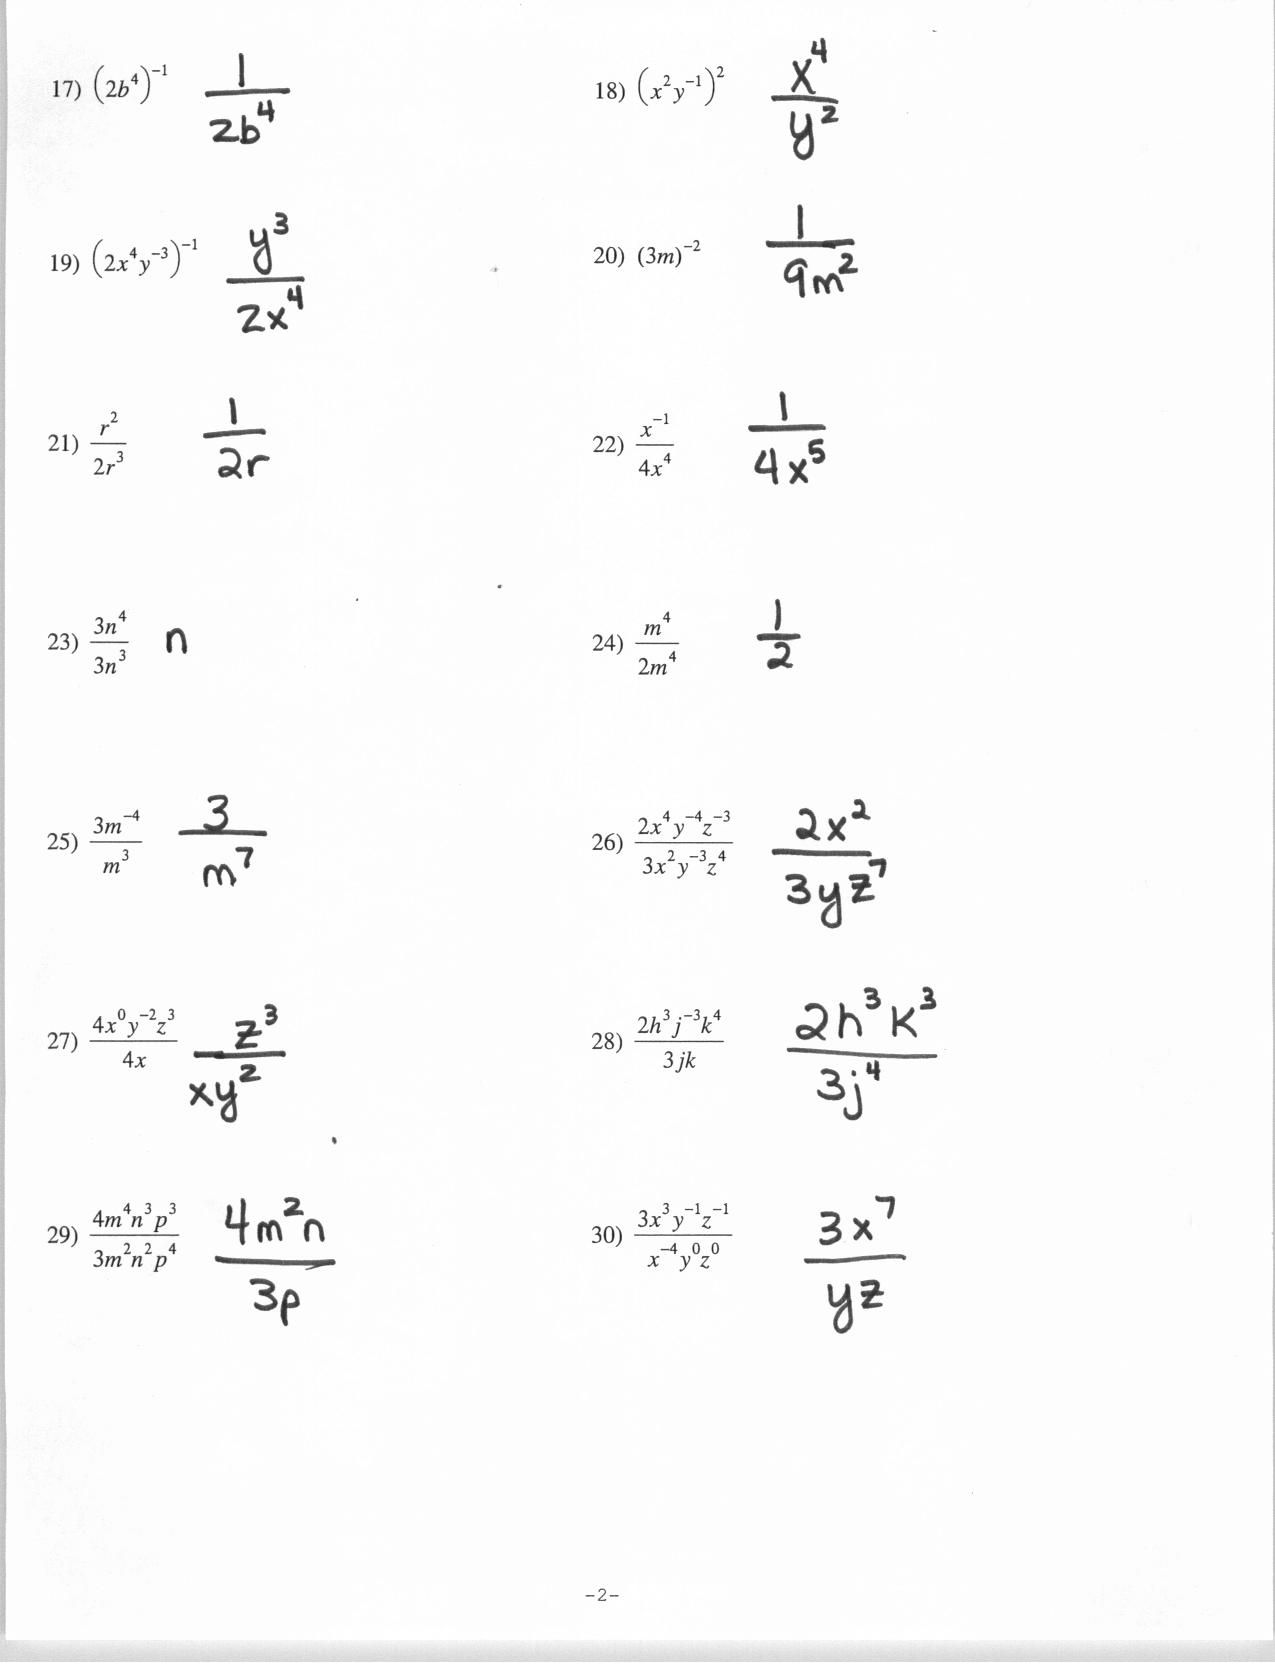 Worksheet Algebra 1 Exponents Worksheet 1000 images about algebra on pinterest mobile app equations and worksheets